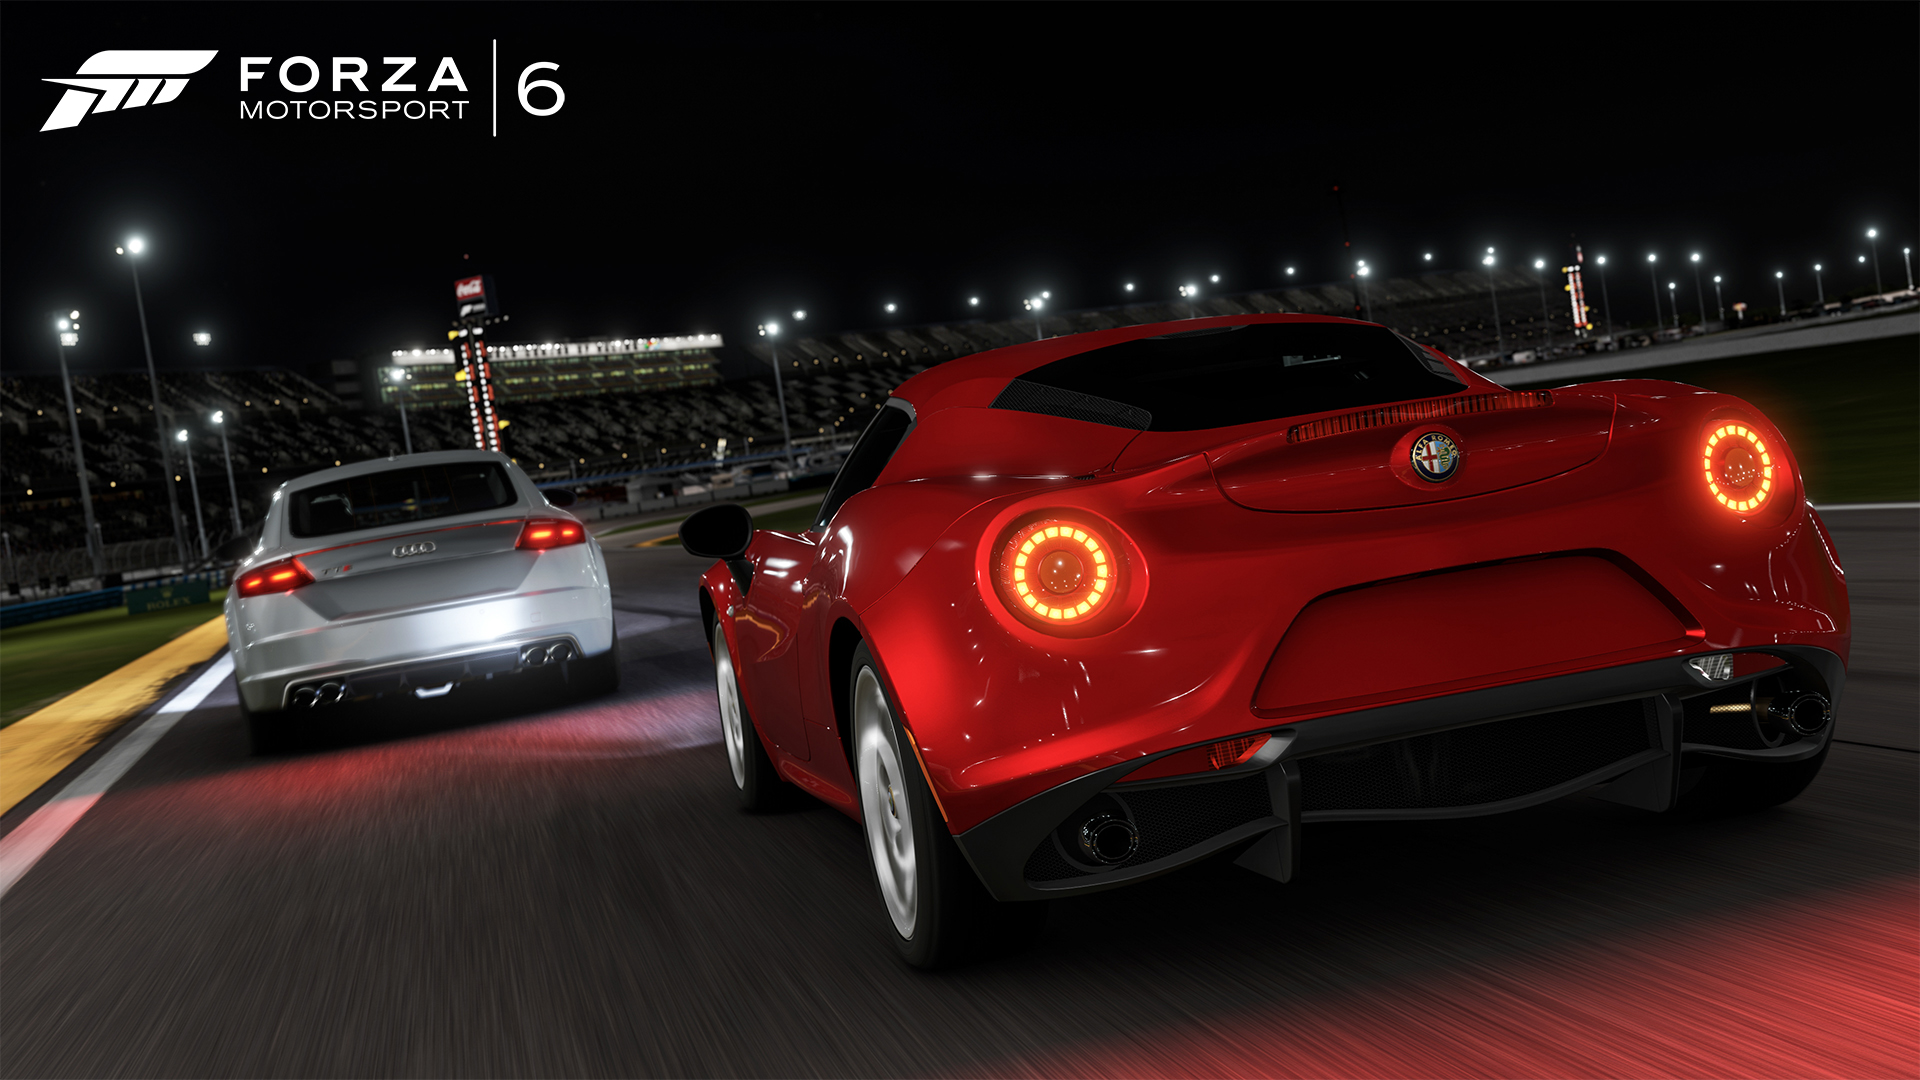 forza-motorsport-6-apex-is-free-to-play-on-pc-you-heard-it-right